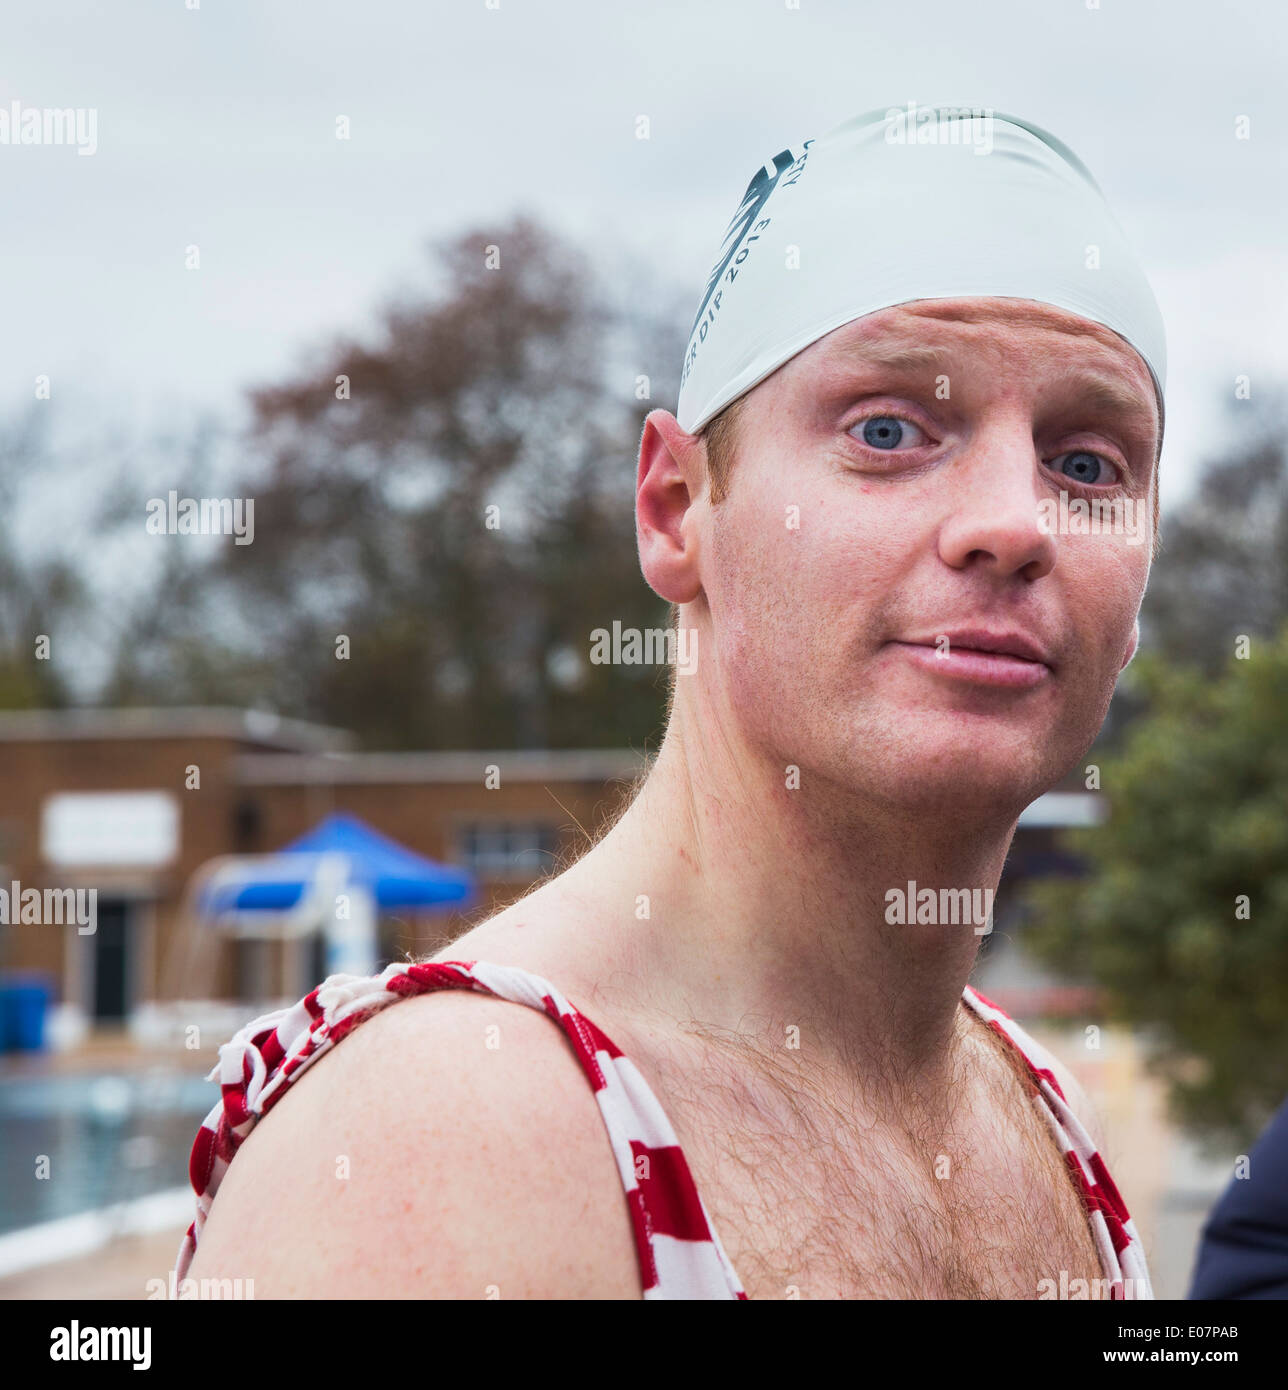 Swimmer ready for the Outdoor Swimming Society December Dip, December 7 2013 Parliament Hill Lido, NW5 1LP London, UK - Stock Image